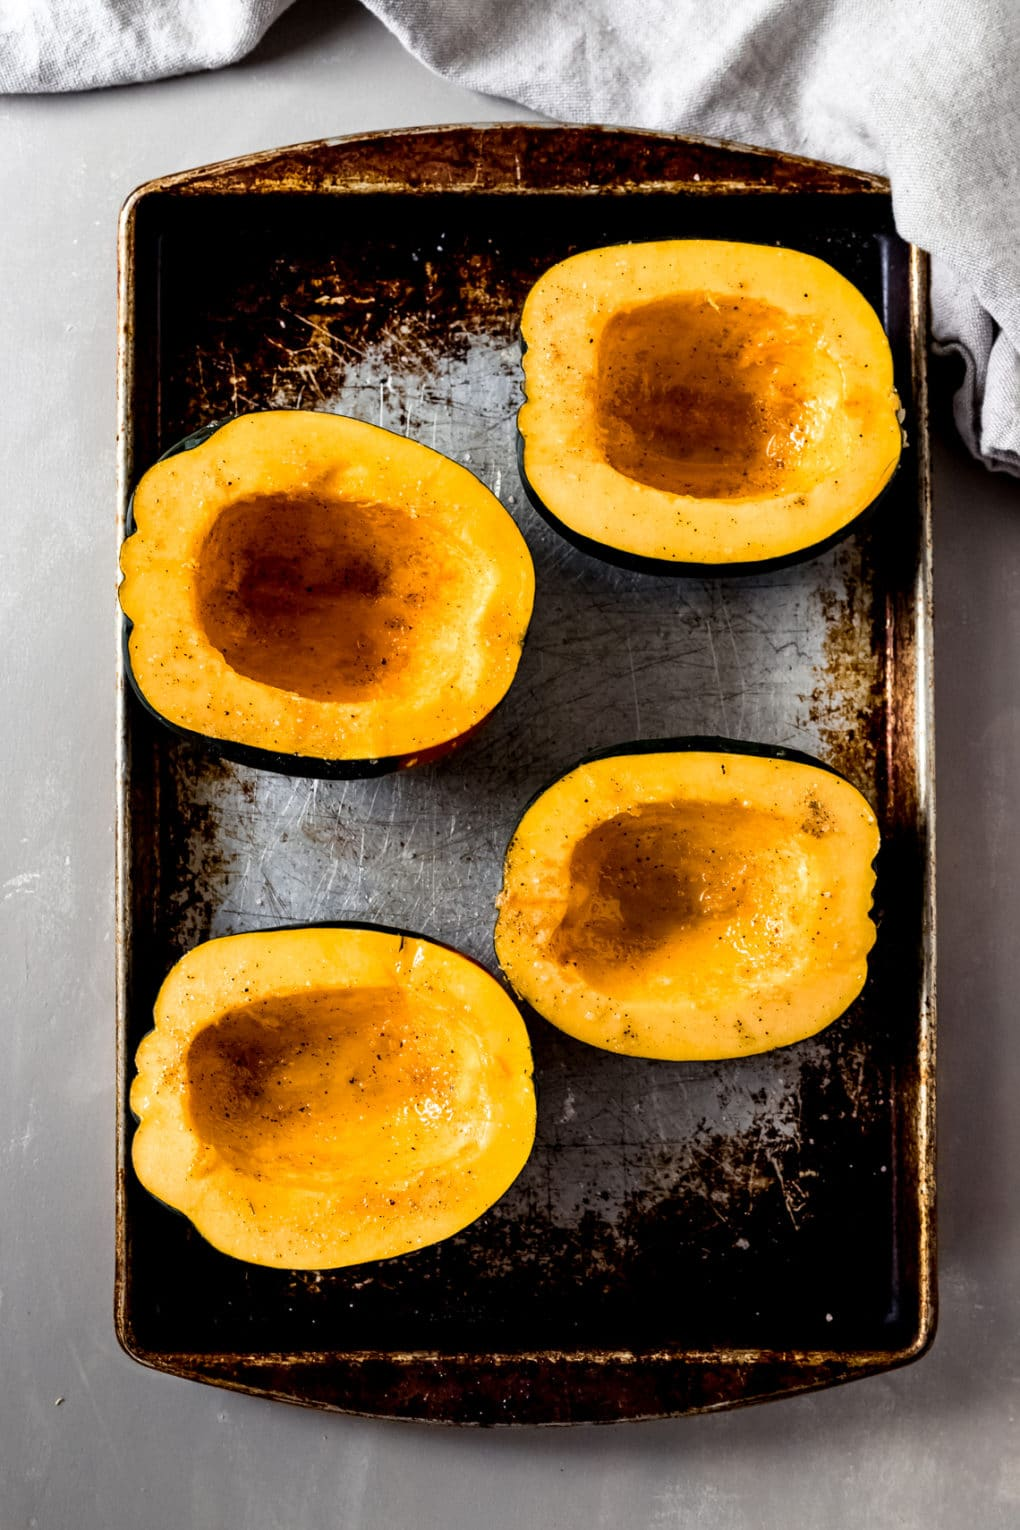 two acorn squash cut in half and laying on a baking sheet ready to bake